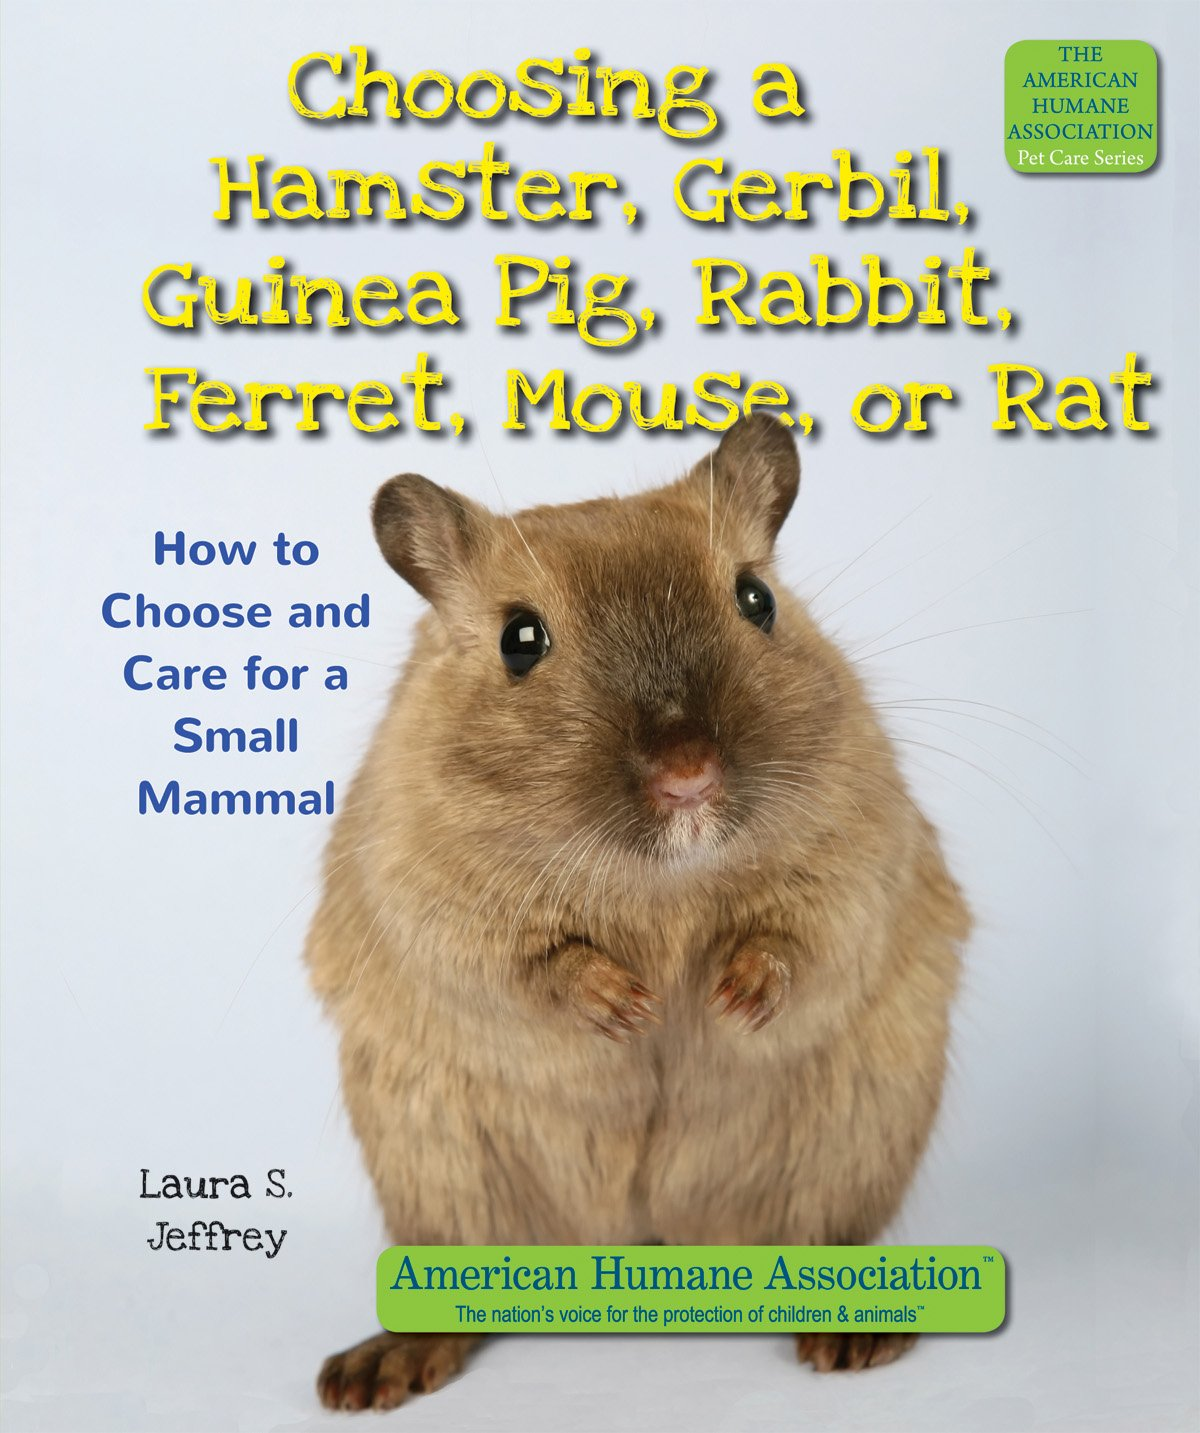 Uncategorized Hamster And Guinea Pig choosing a hamster gerbil guinea pig rabbit ferret mouse or rat how to choose and care for small mammal american humane